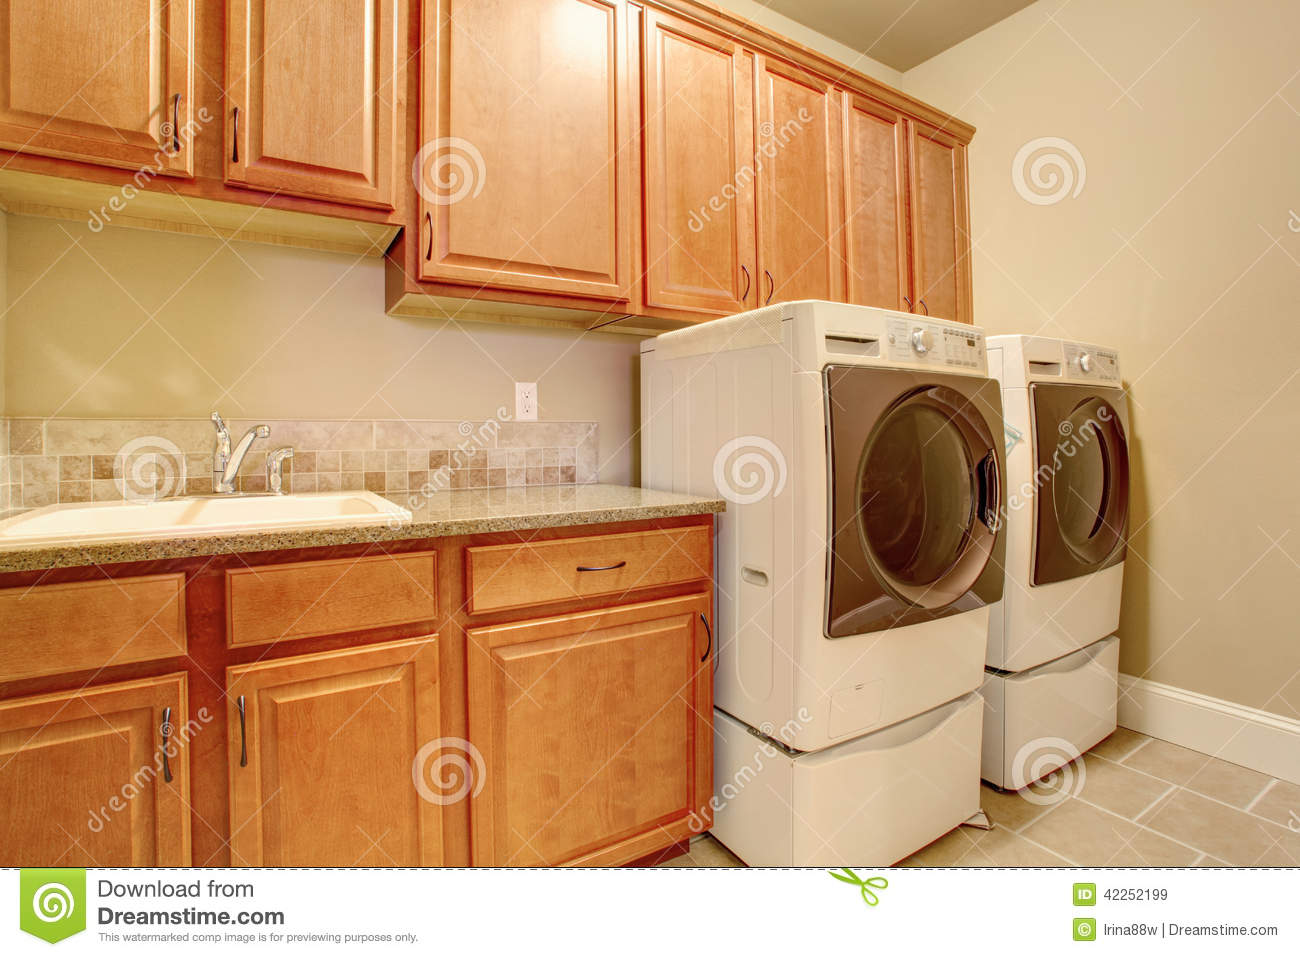 laundry room storage cabinets laundry room interior stock image image of dryer 22537